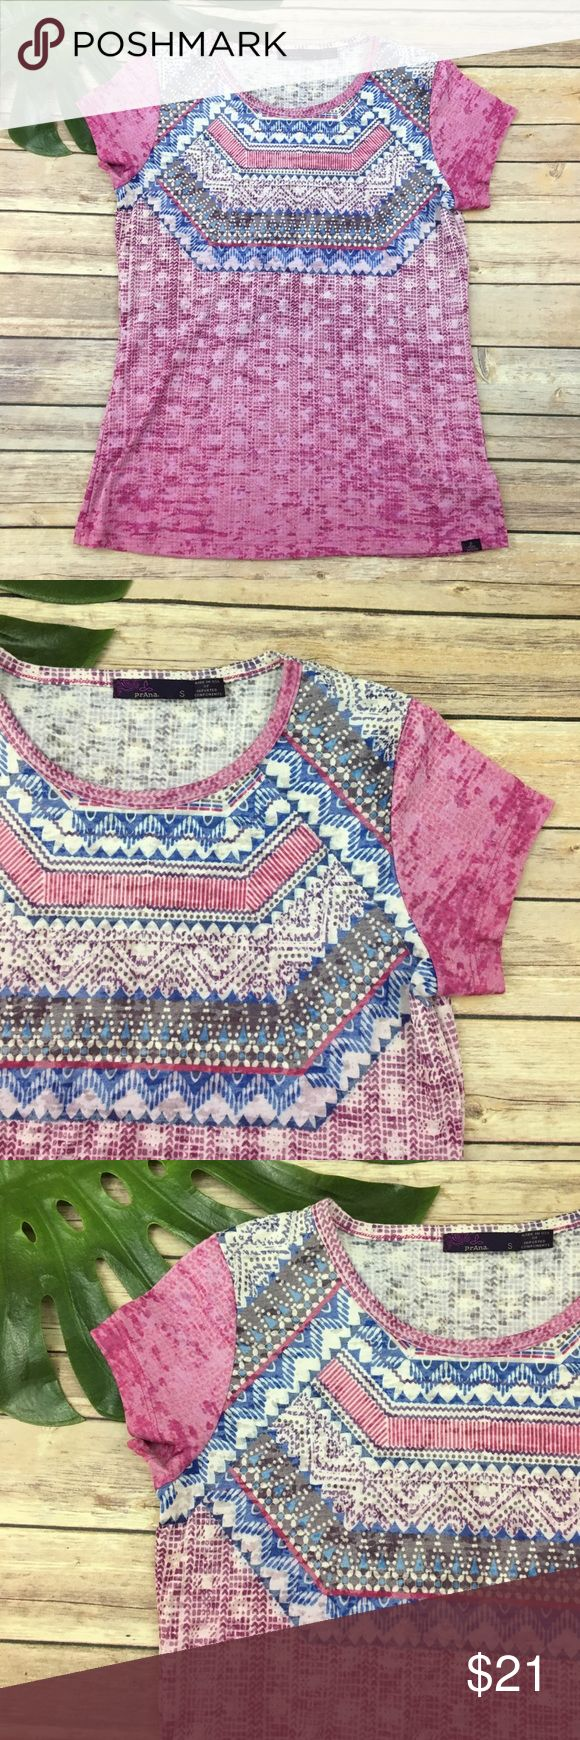 Prana pink geometric print burnout tee Prana pink & purple geometric print burnout top, size S. It is free from any rips or stains. It measures about 37 inches around the bust and is about 24 inches long. Prana Tops Tees - Short Sleeve